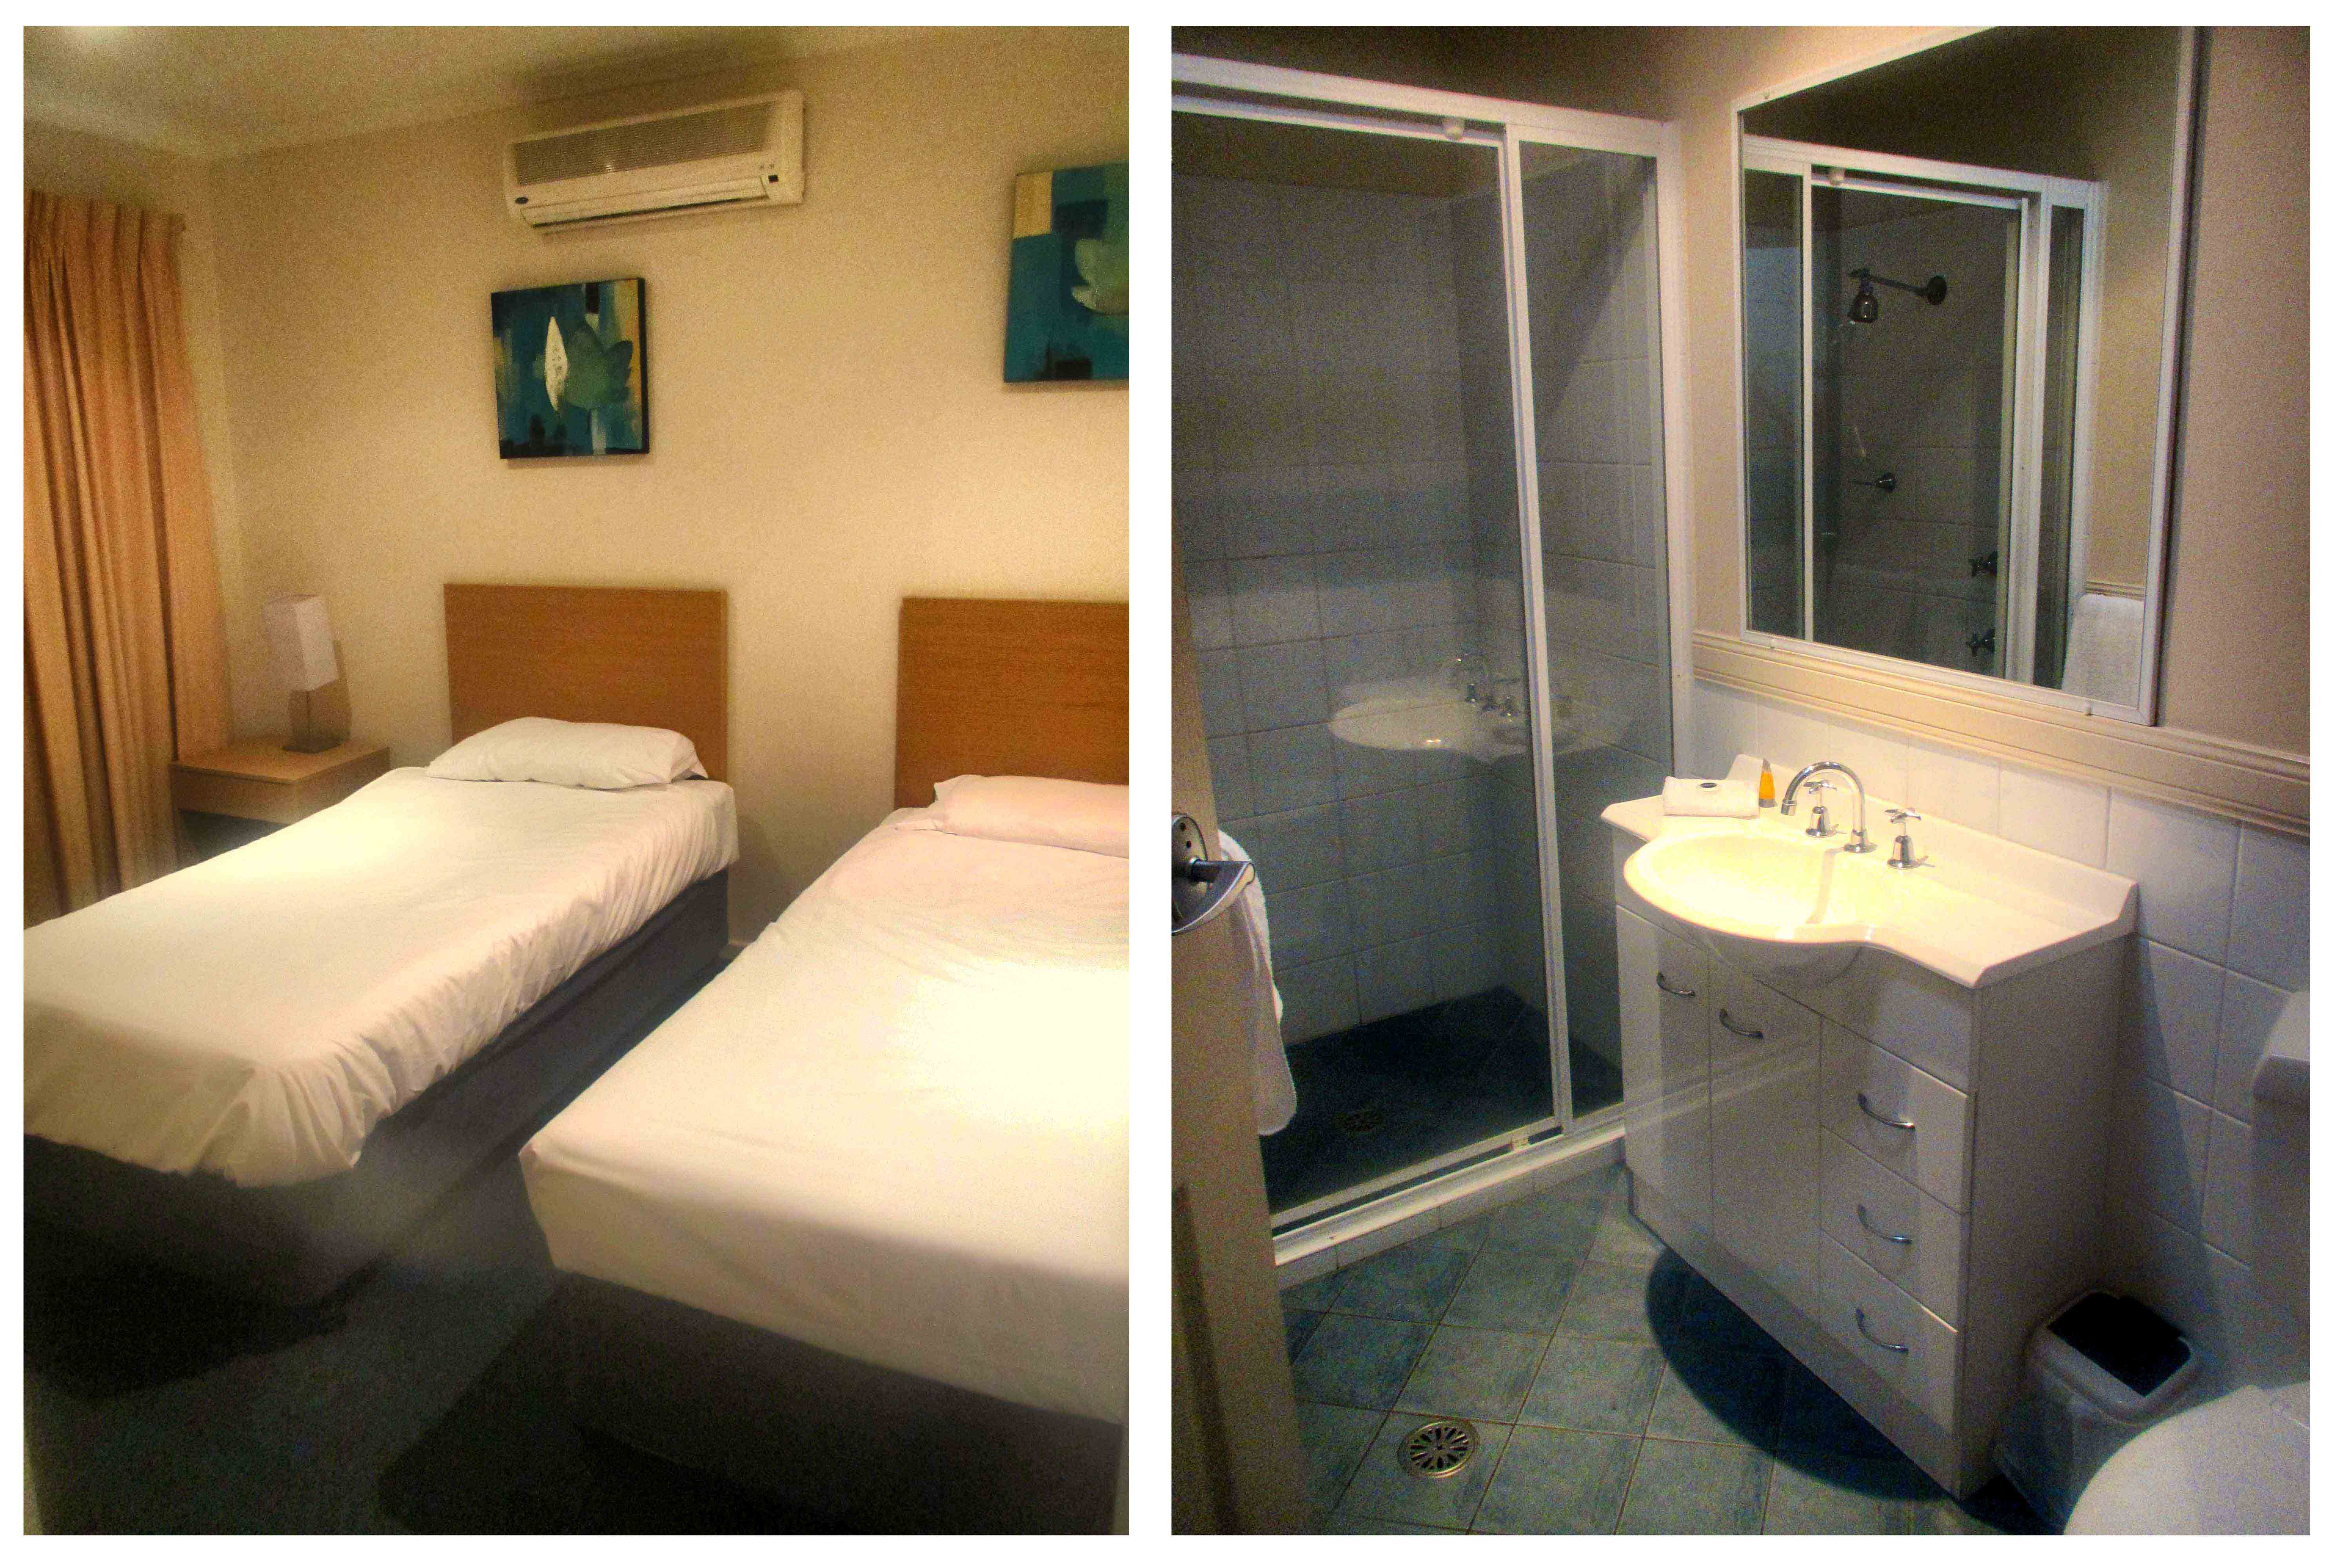 Aqualuna beach resort coffs harbour brisbane for Bathroom seconds brisbane